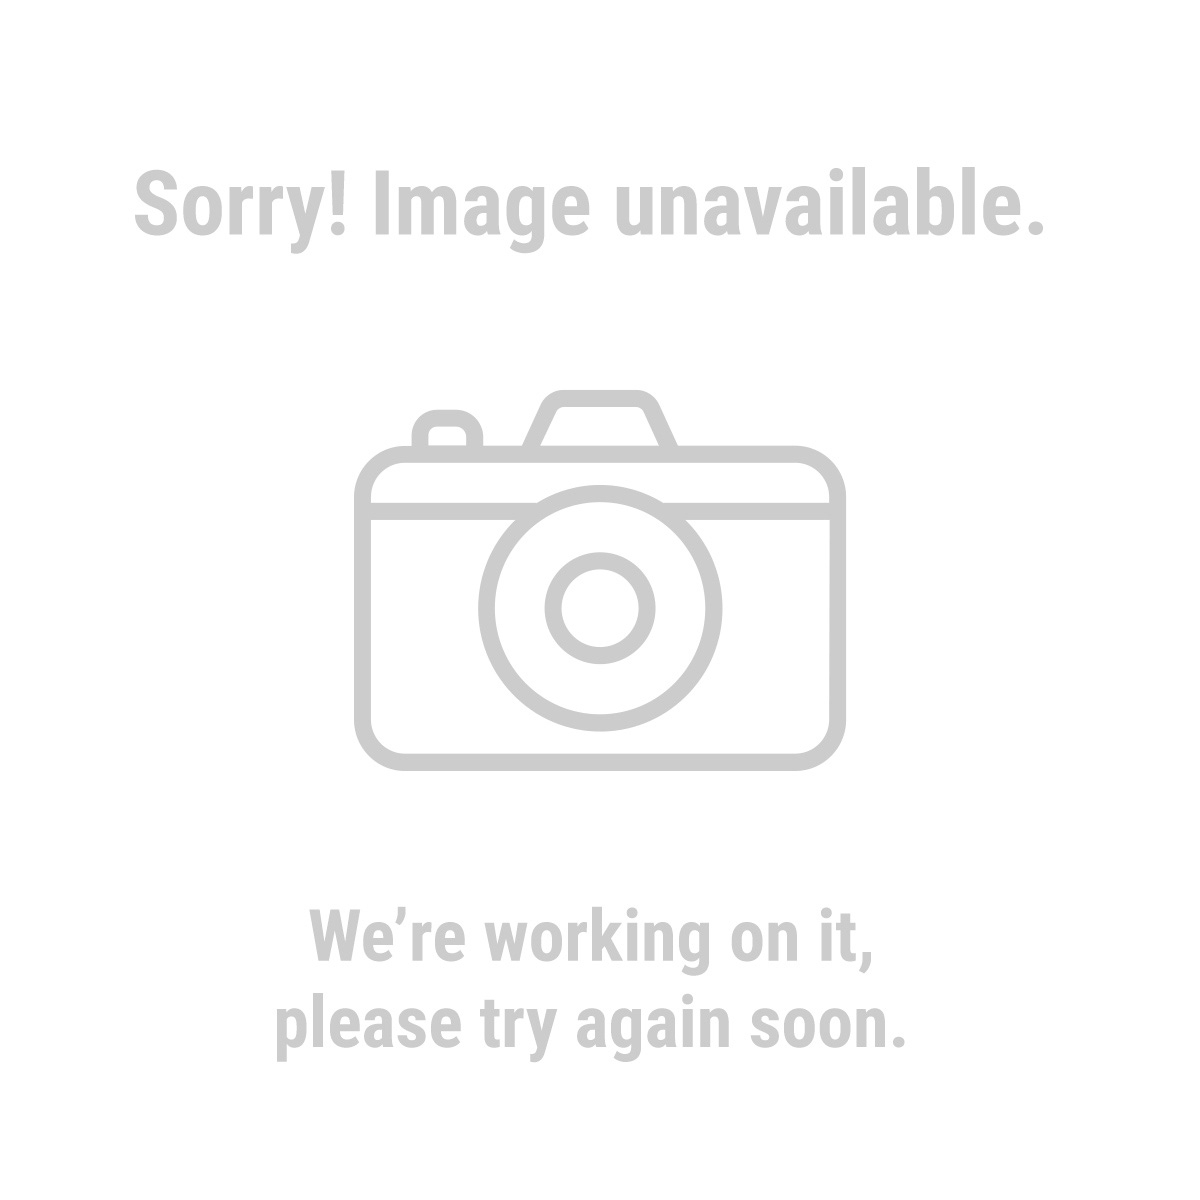 Haul-Master 62639 10 in. Worry Free Tire with Polyurethane Hub